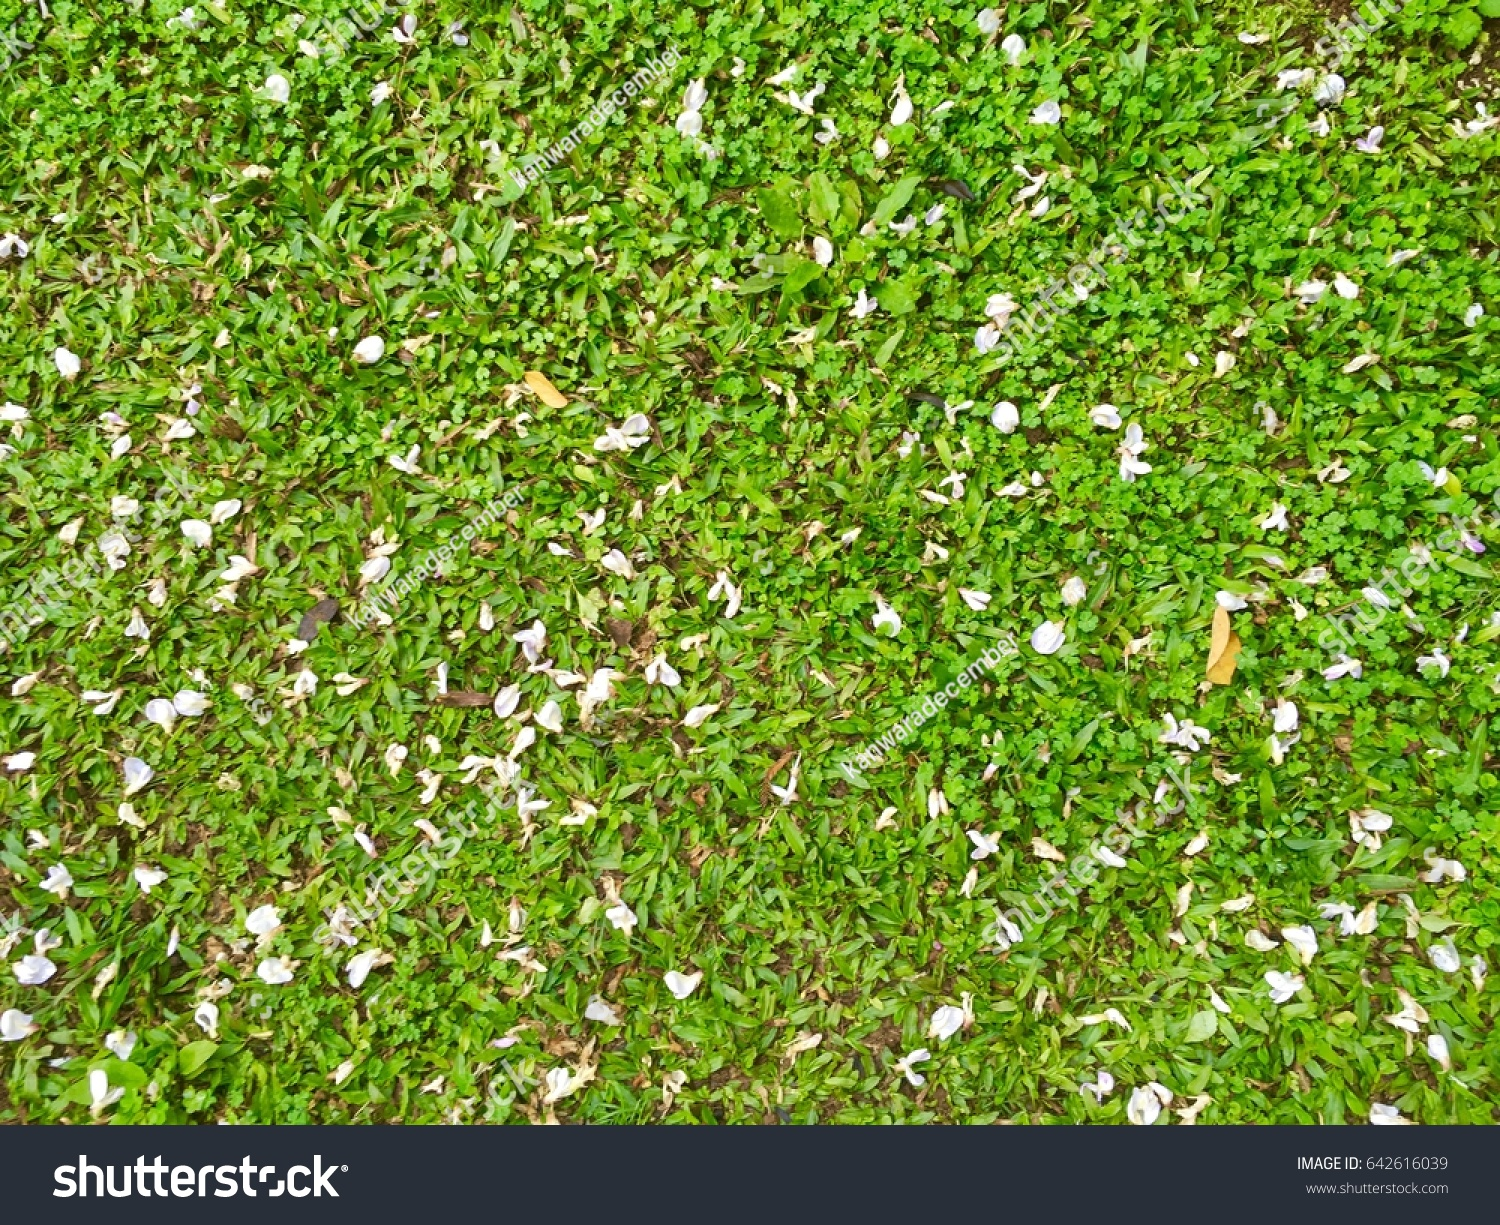 Beautiful fall flowers green grass background stock photo 642616039 beautiful fall flowers and green grass background izmirmasajfo